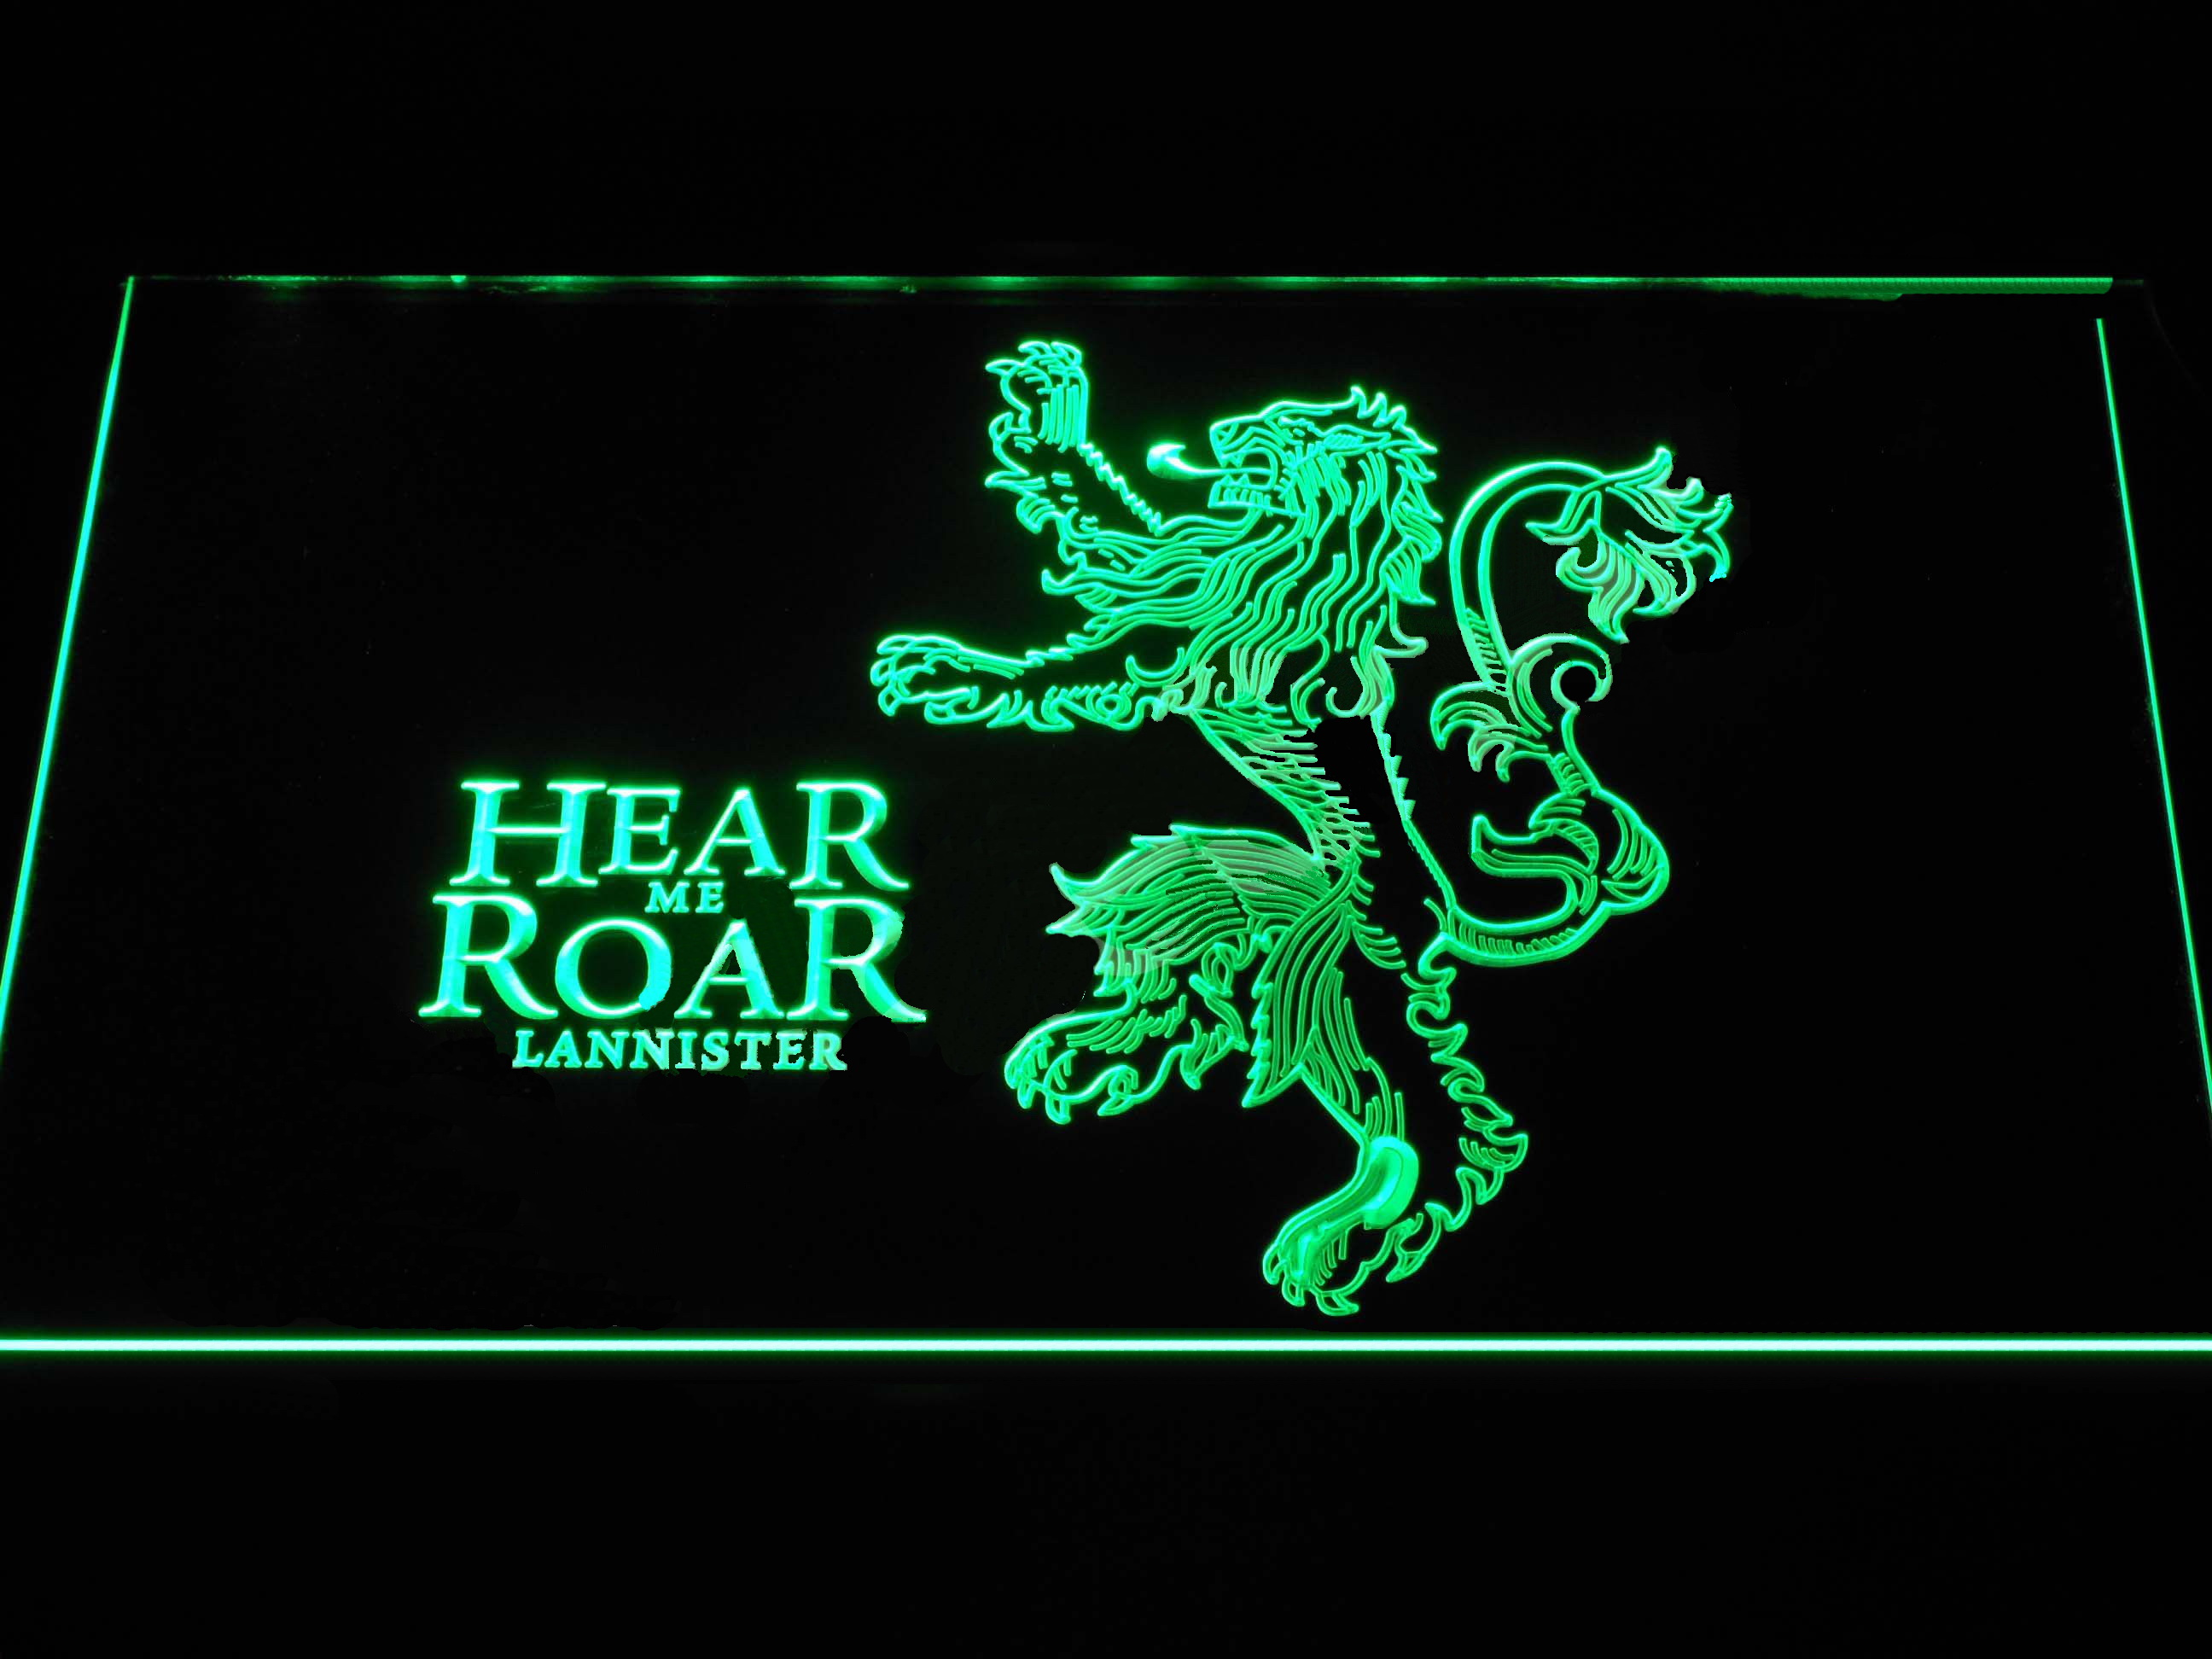 Game of Thrones Lannister Hear Me Roar LED Neon Sign